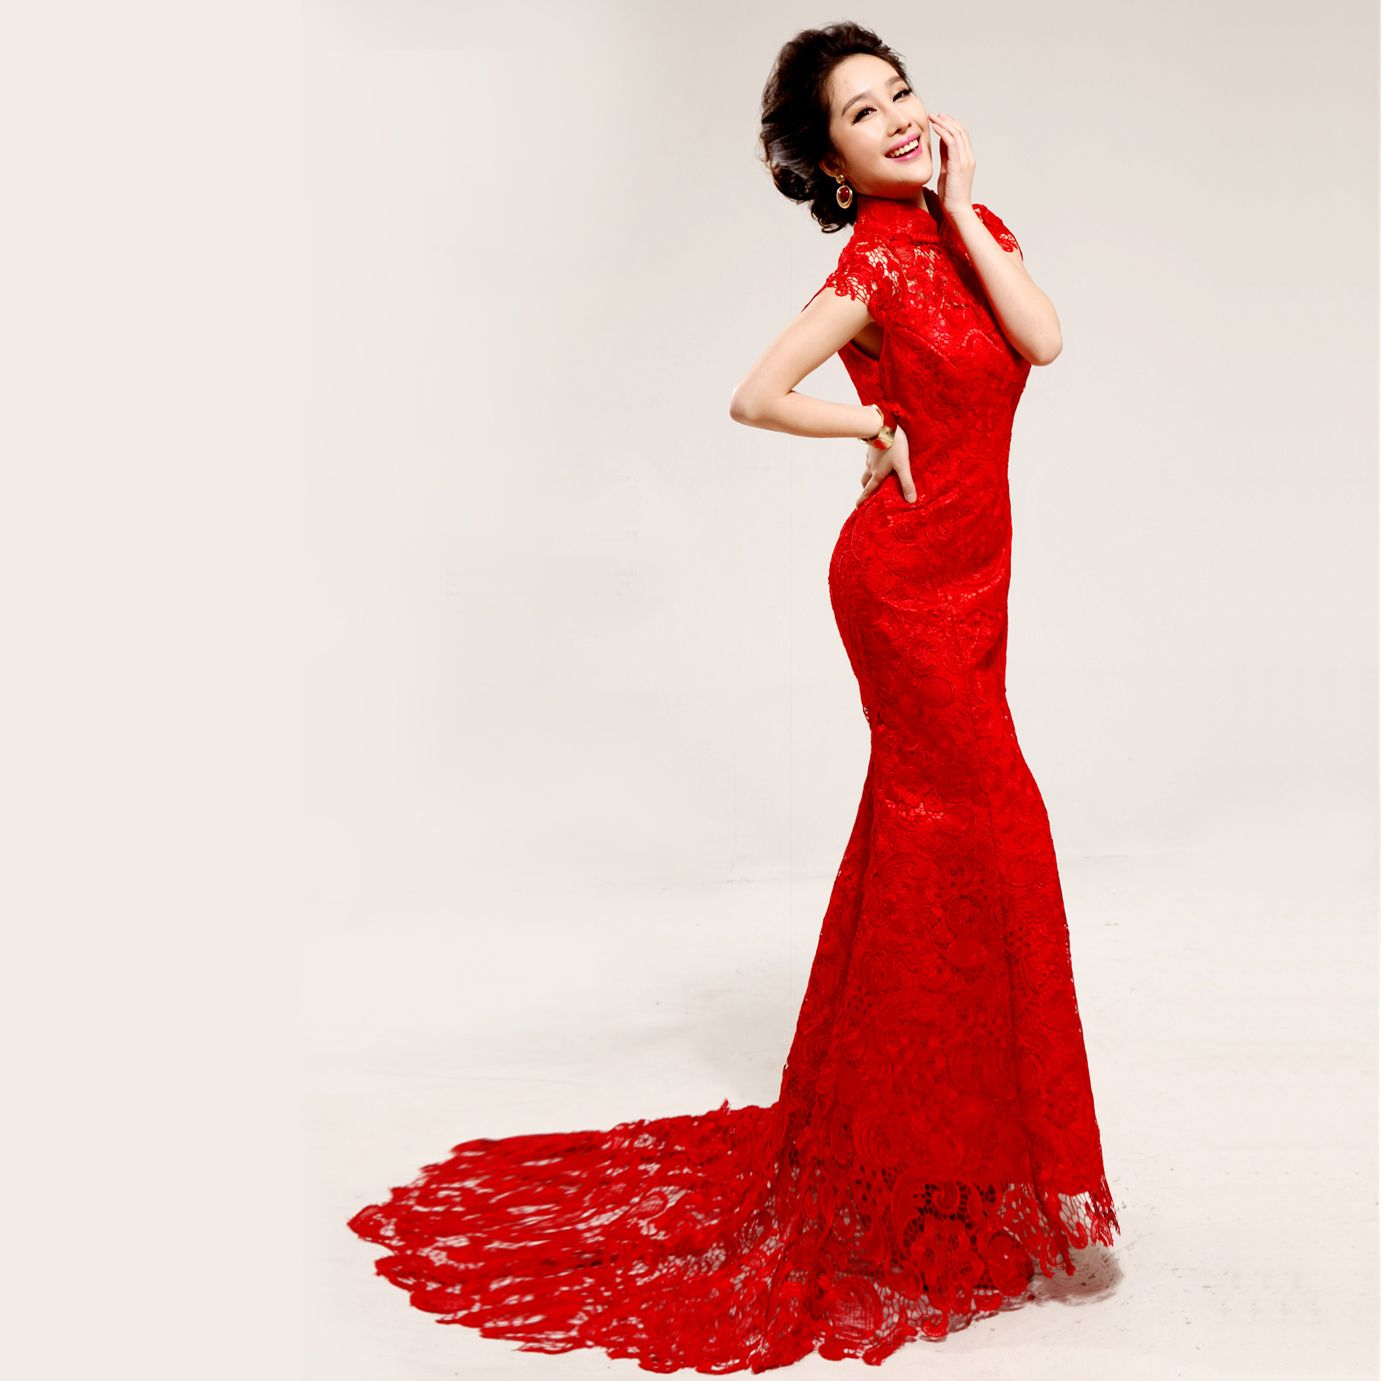 red wedding dress Red Lace Wedding Dress X Disclaimer We do not own any of these pictures graphics All the images are not under